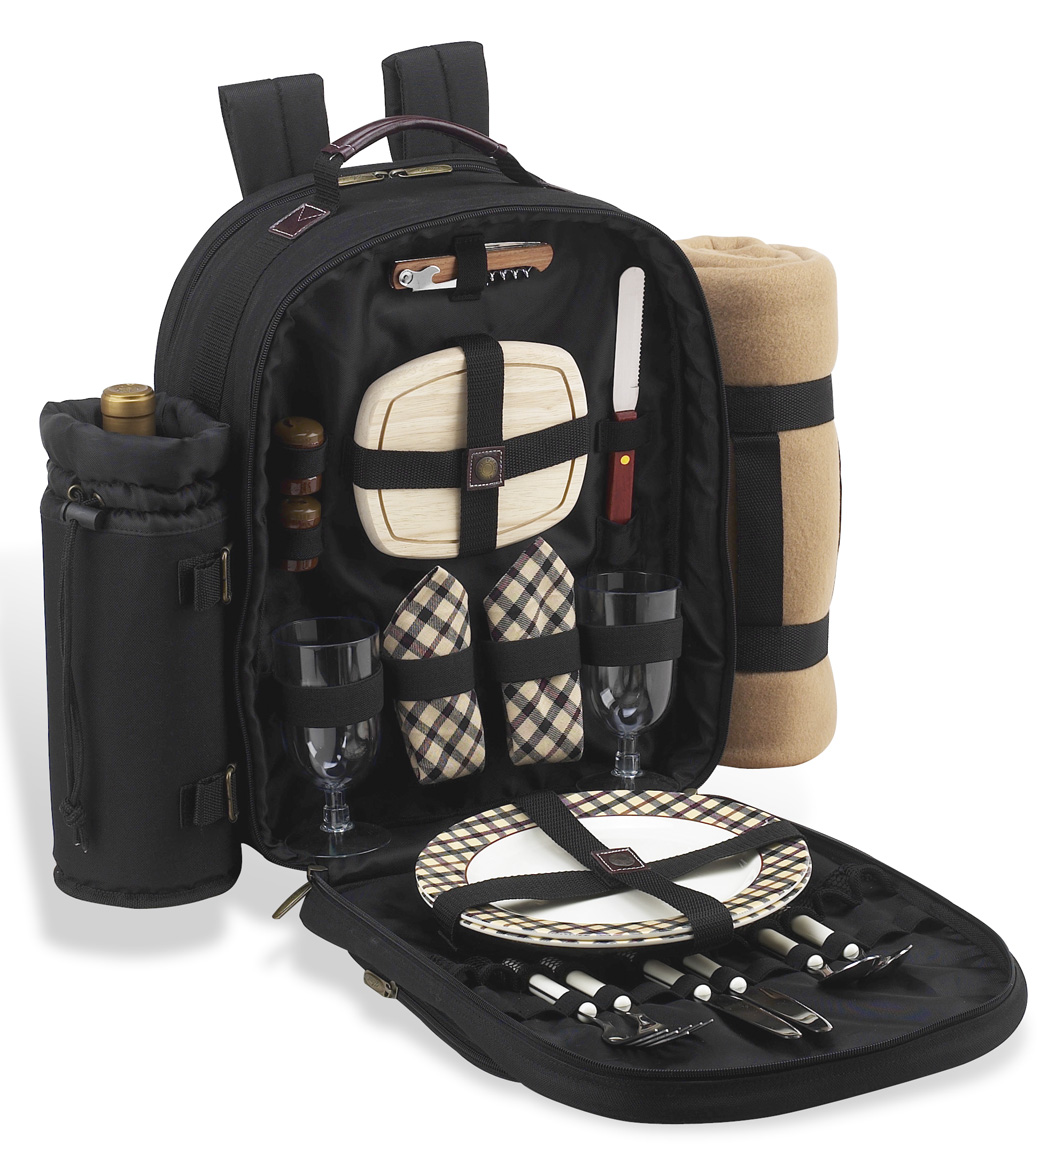 Picnic Basket Backpack Two : Picnic at ascot deluxe equipped person backpack